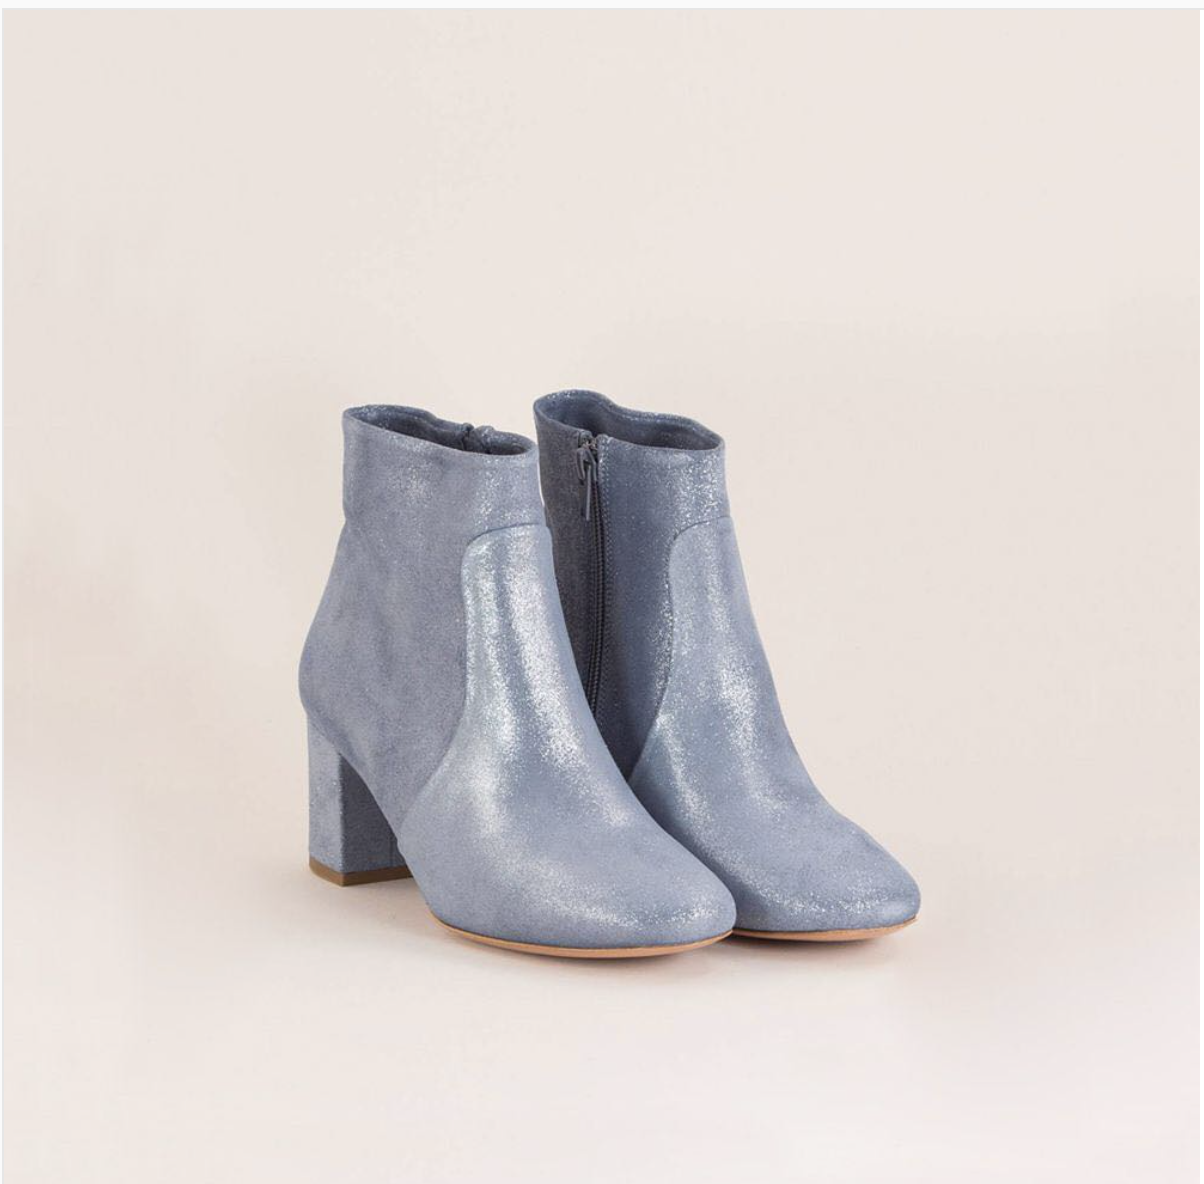 Always leave room for a pair of suede ankle boots...